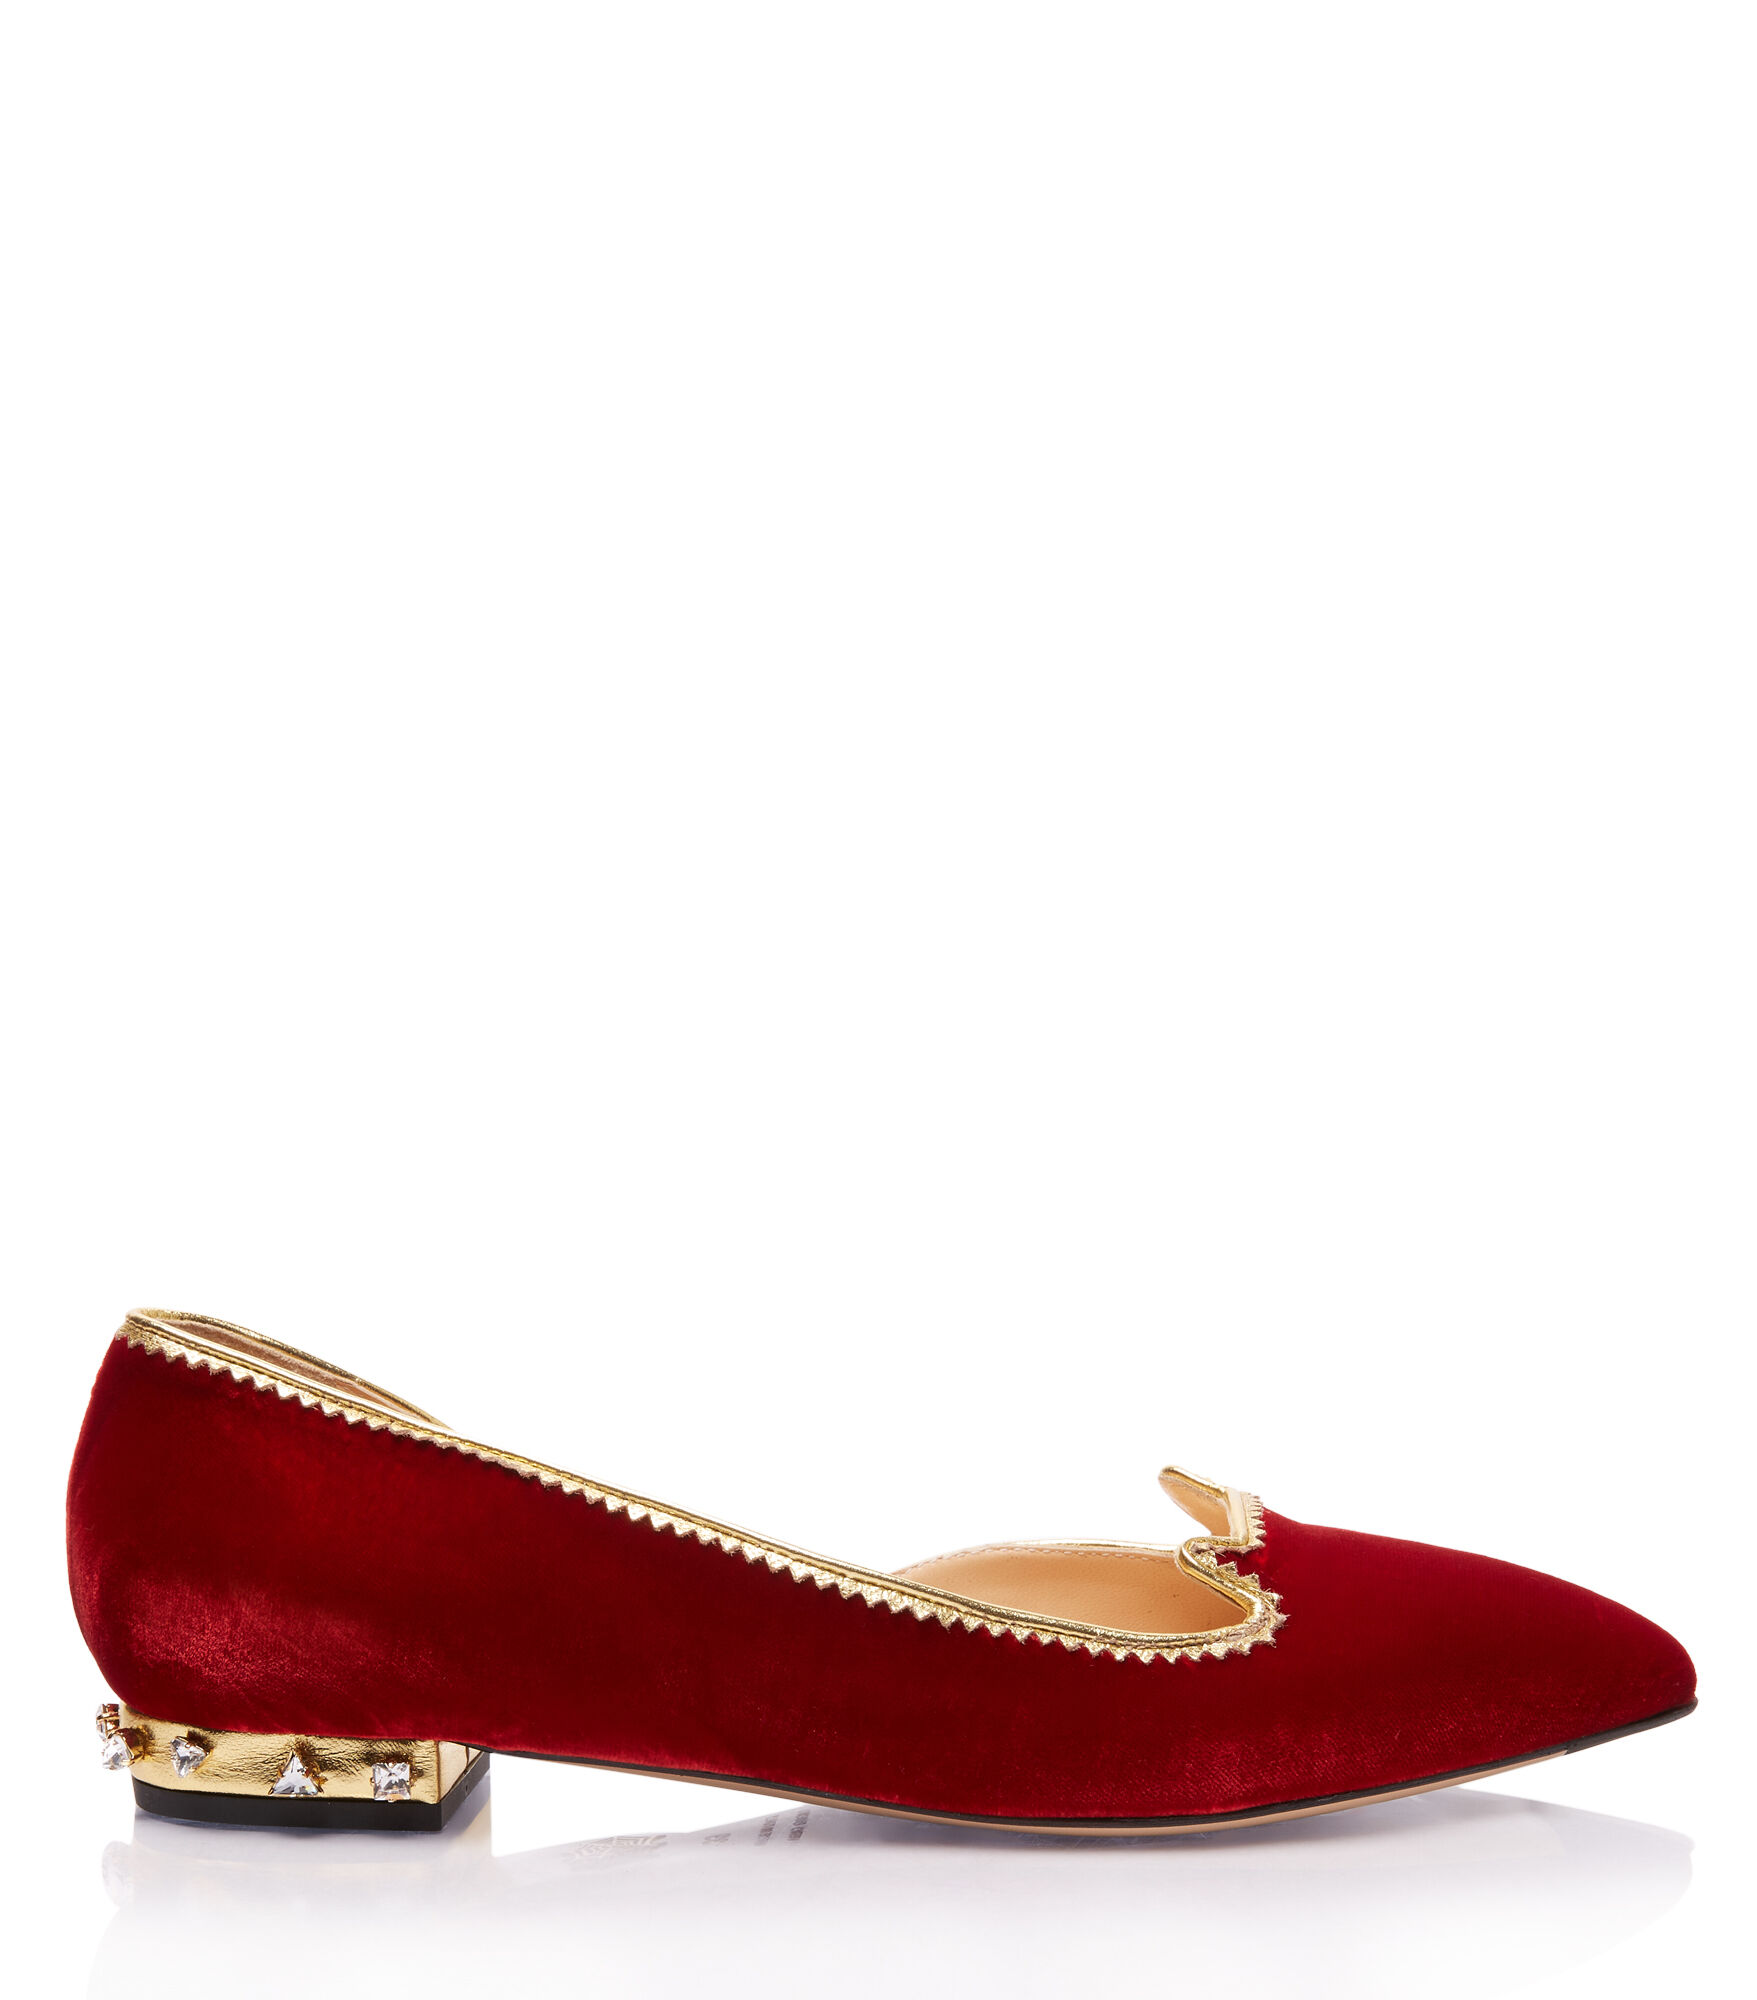 Charlotte Olympia Bejewelled Kitty D'Orsay In Fire Red&Crystal